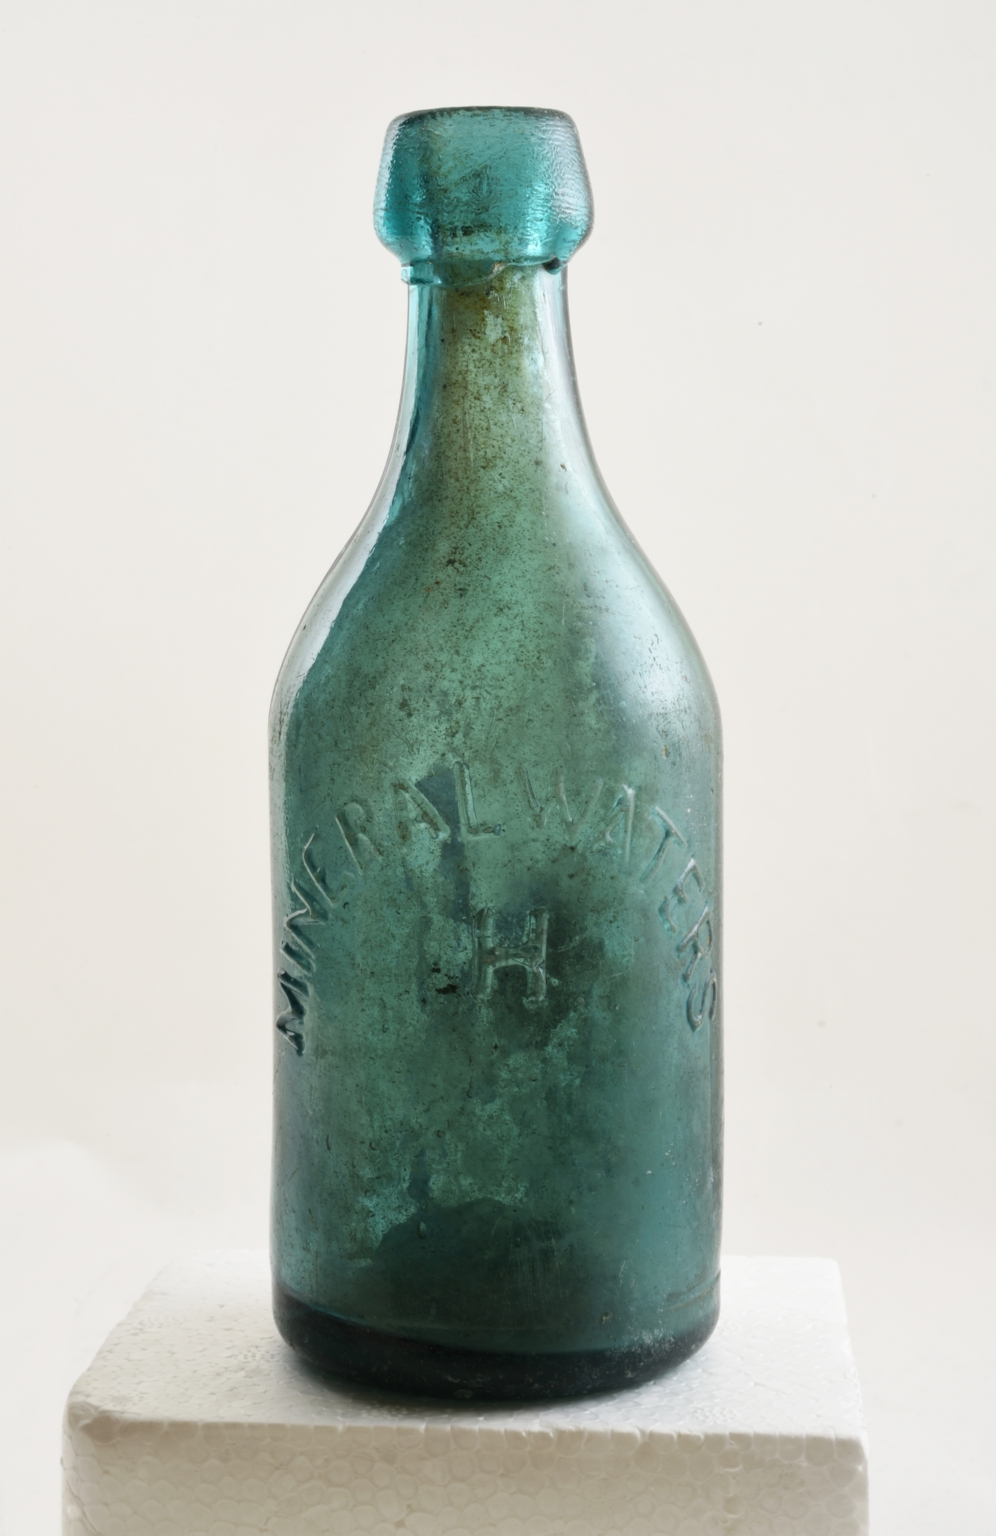 Mineral water bottle